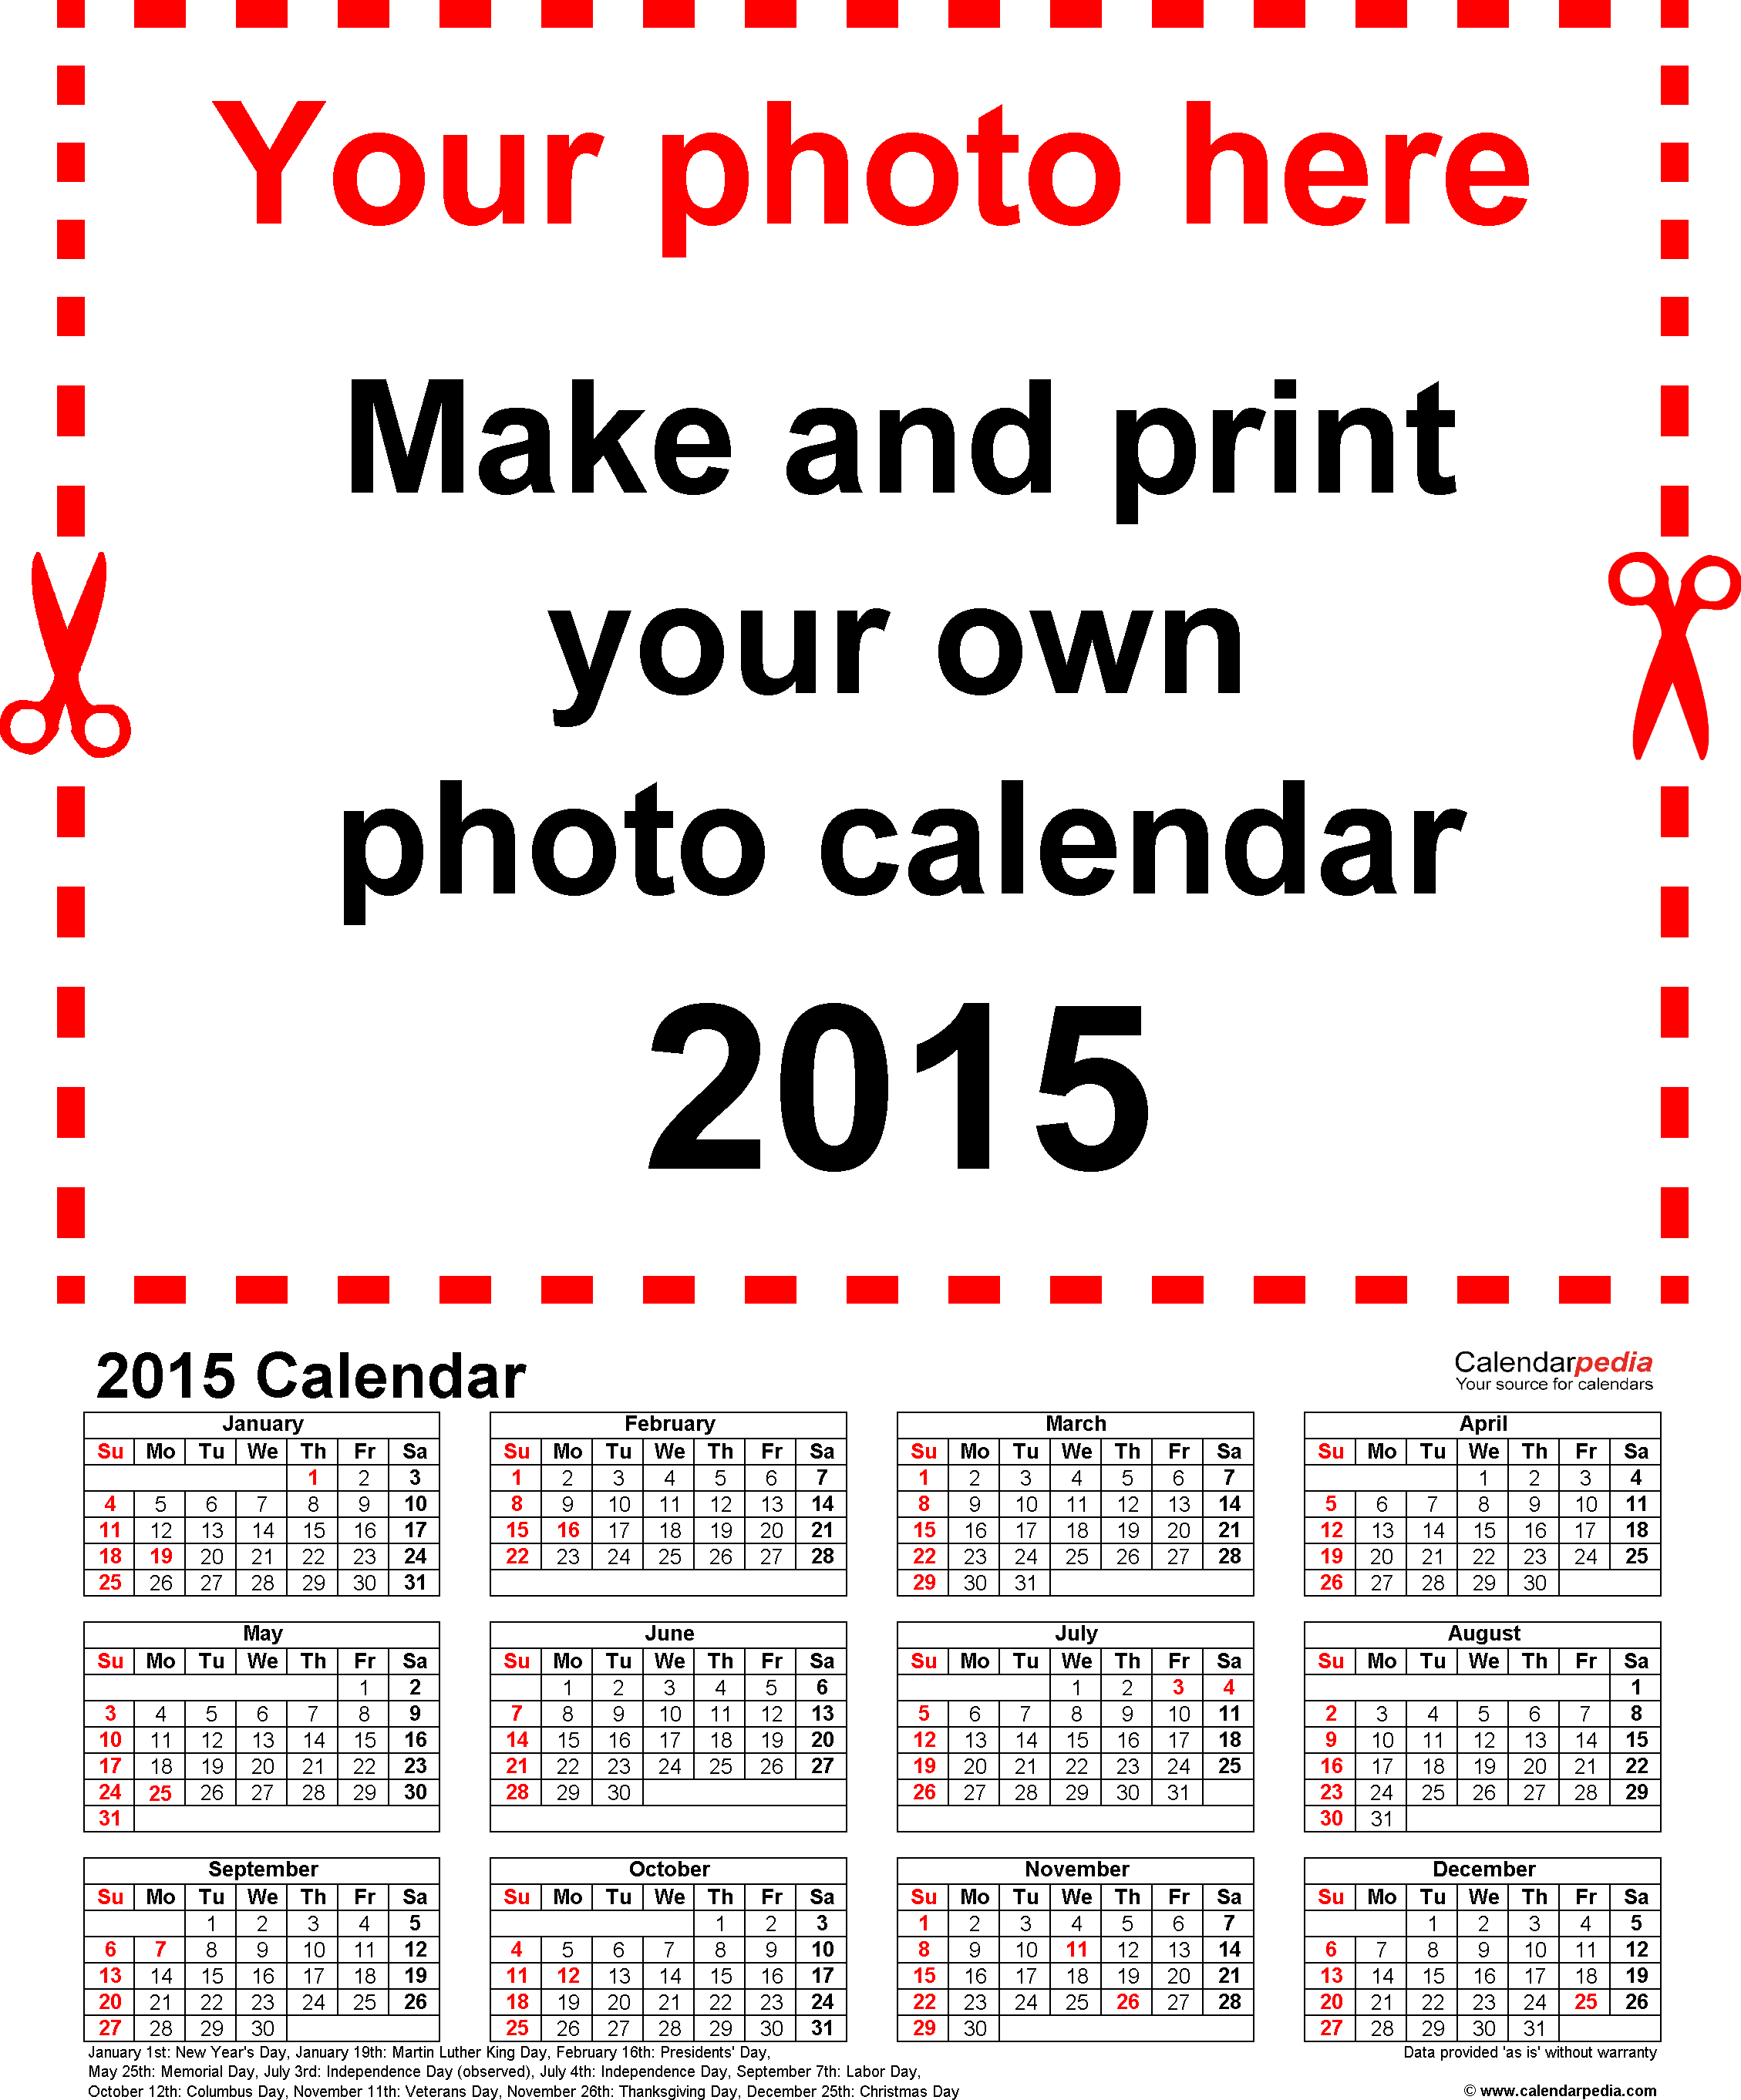 template 4 photo calendar 2015 for word portrait format whole year on one